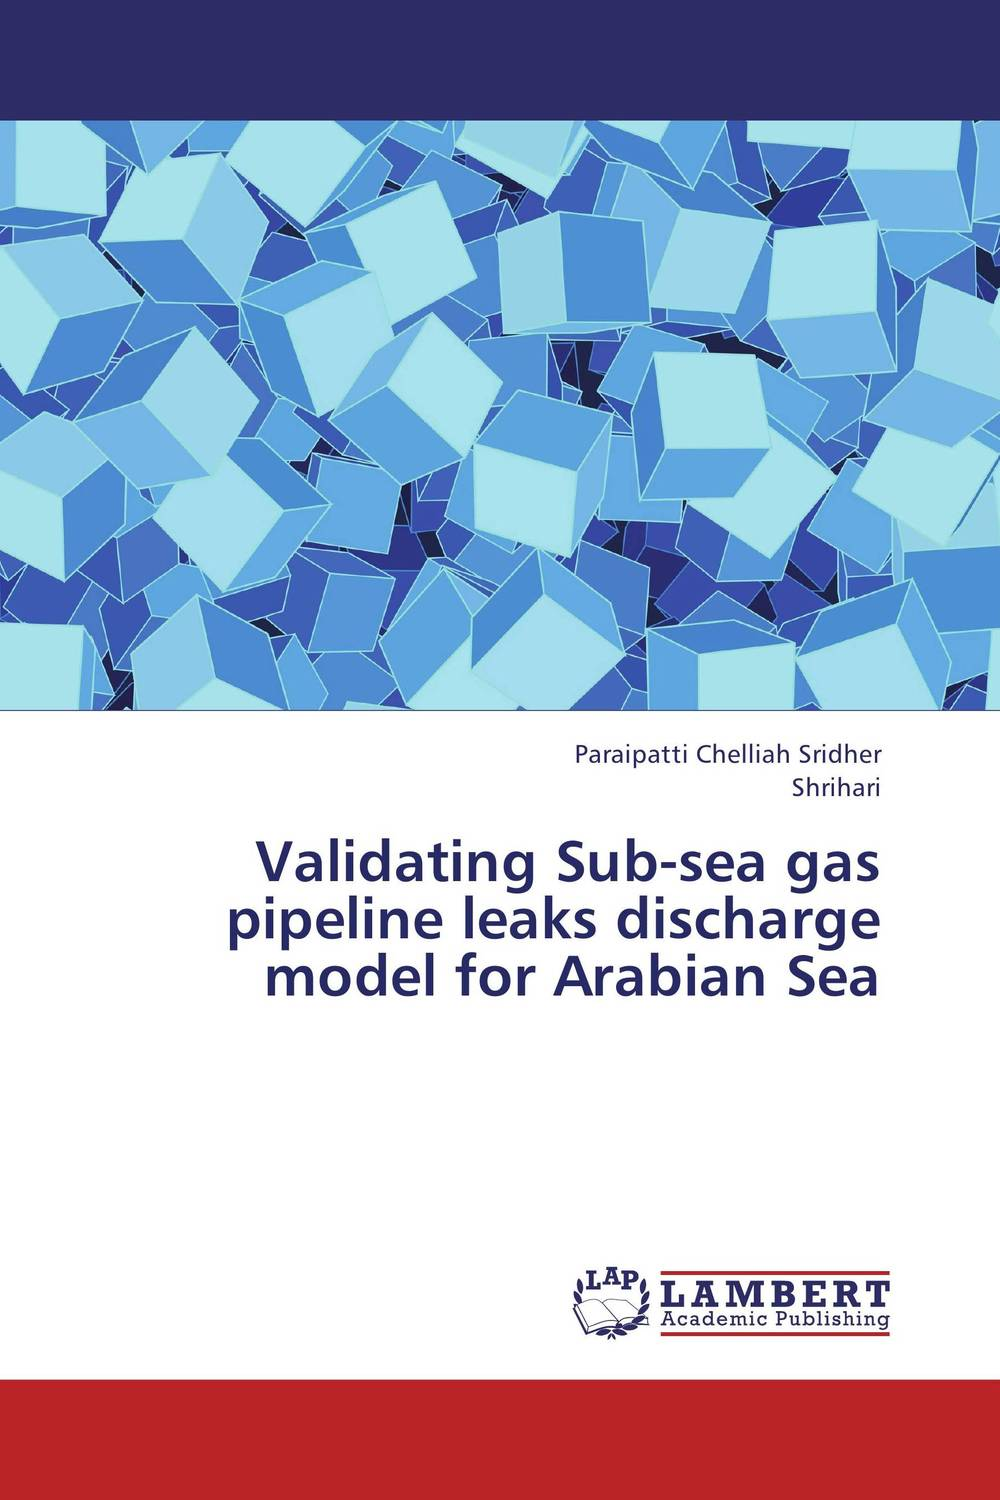 Validating Sub-sea gas pipeline leaks discharge model for Arabian Sea given to the sea